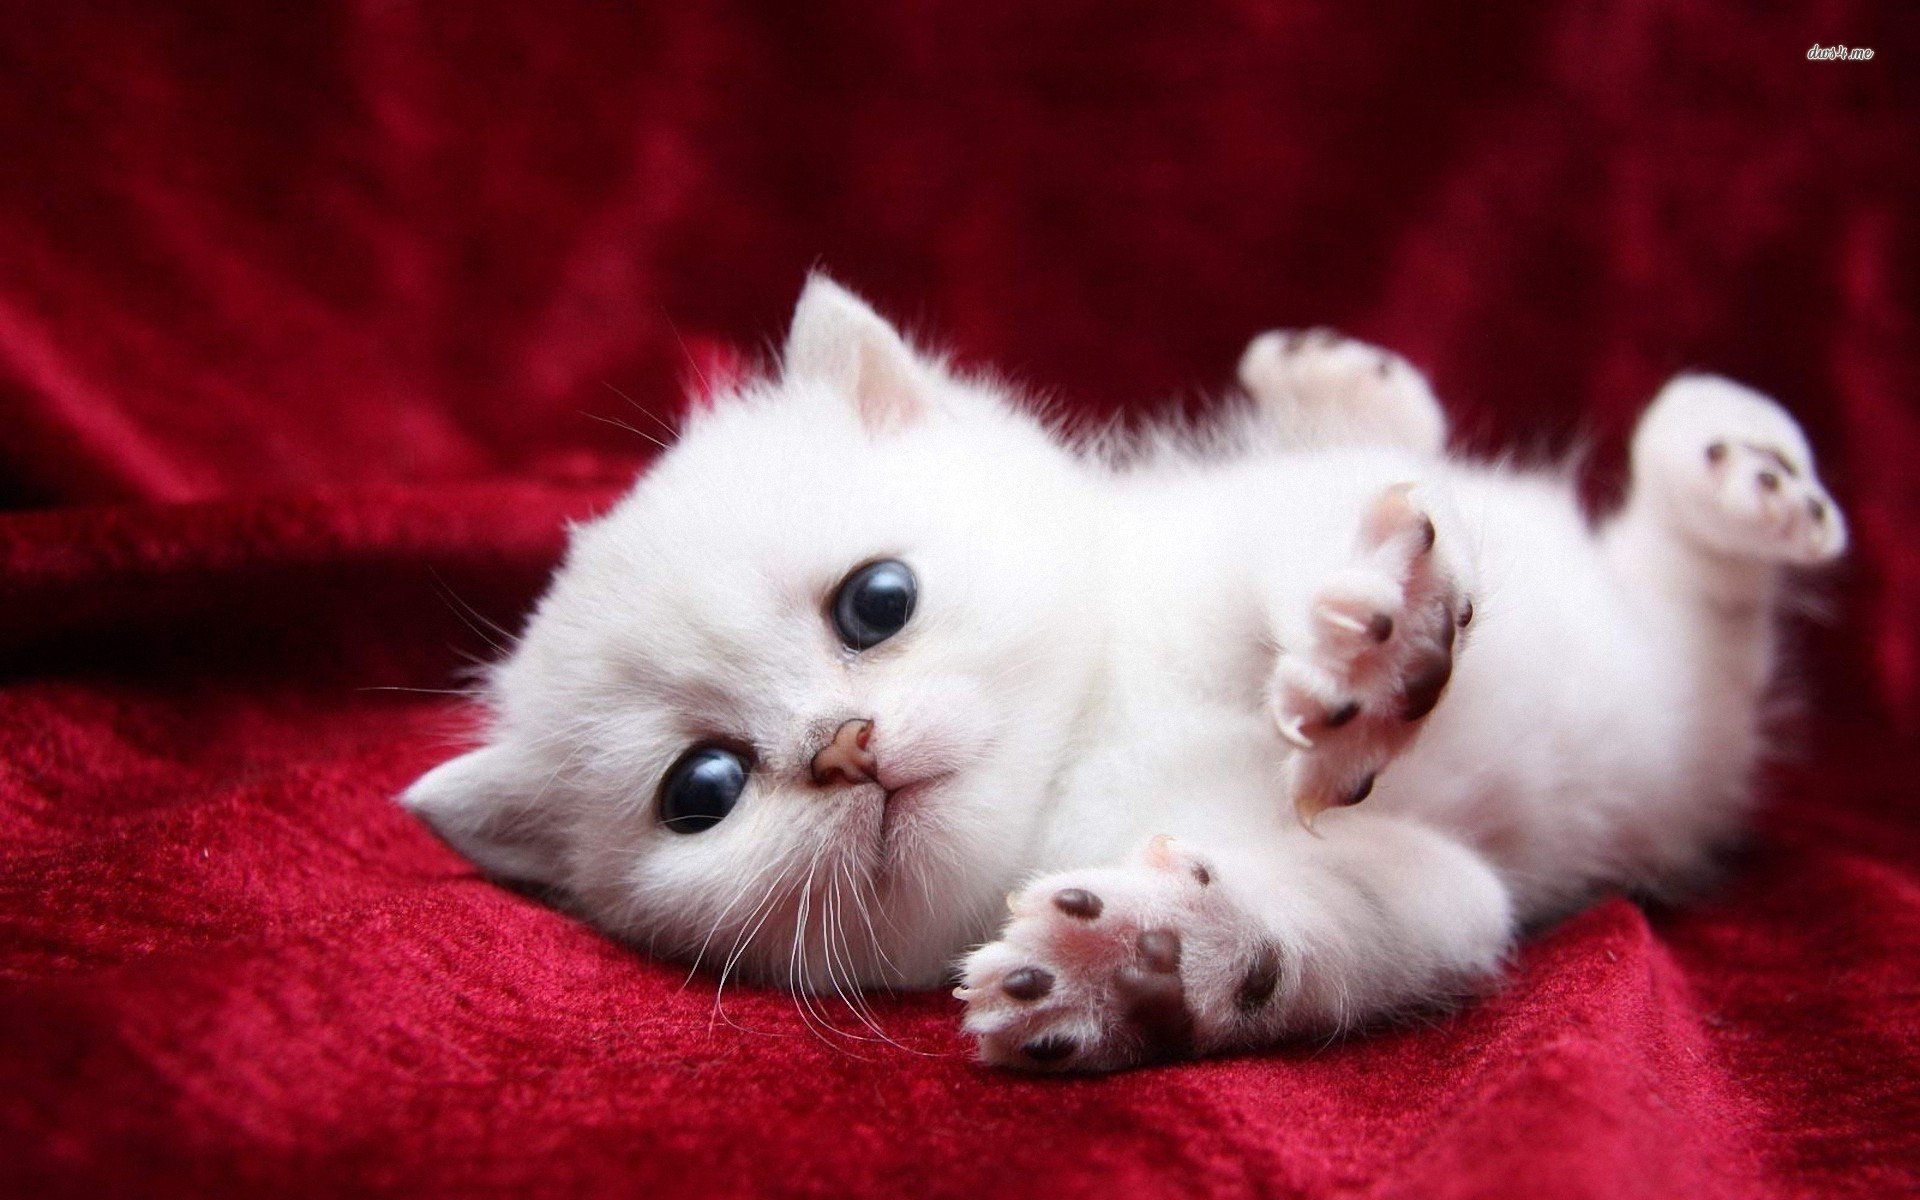 Wallpaper cats and kittens 66 images - Cute kittens hd wallpaper free download ...